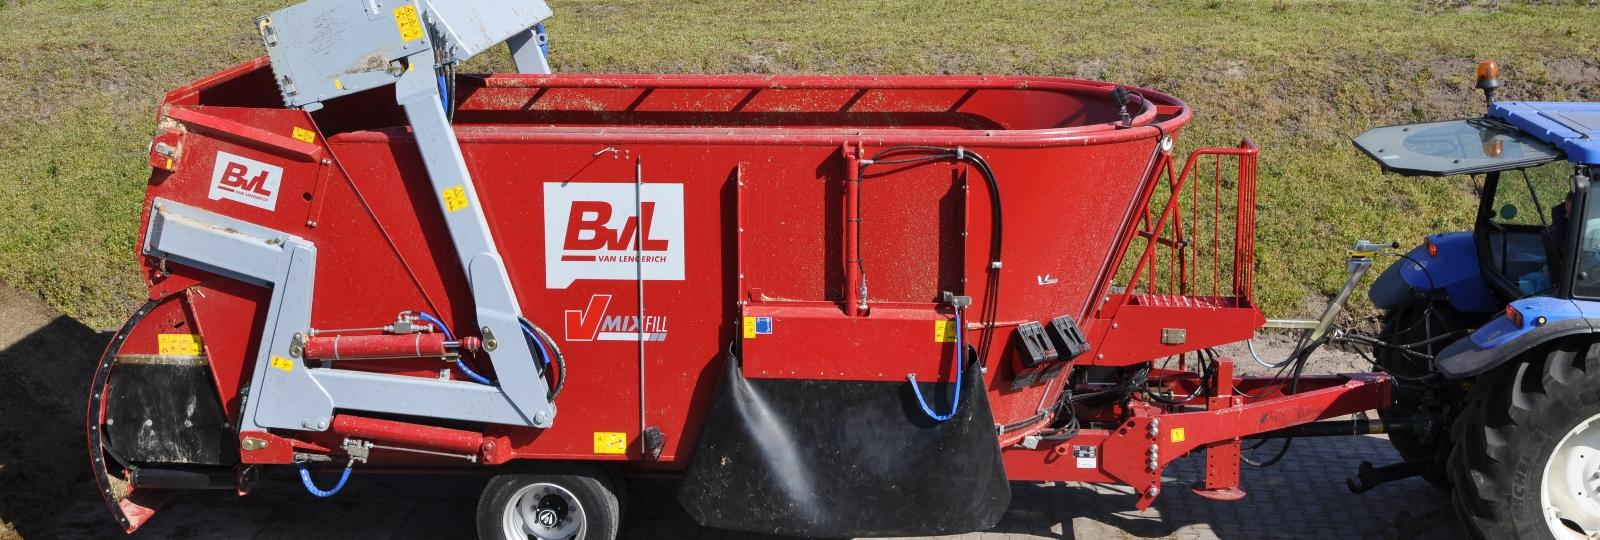 BvL Selbstlader V-MIX Fill LS an Silage